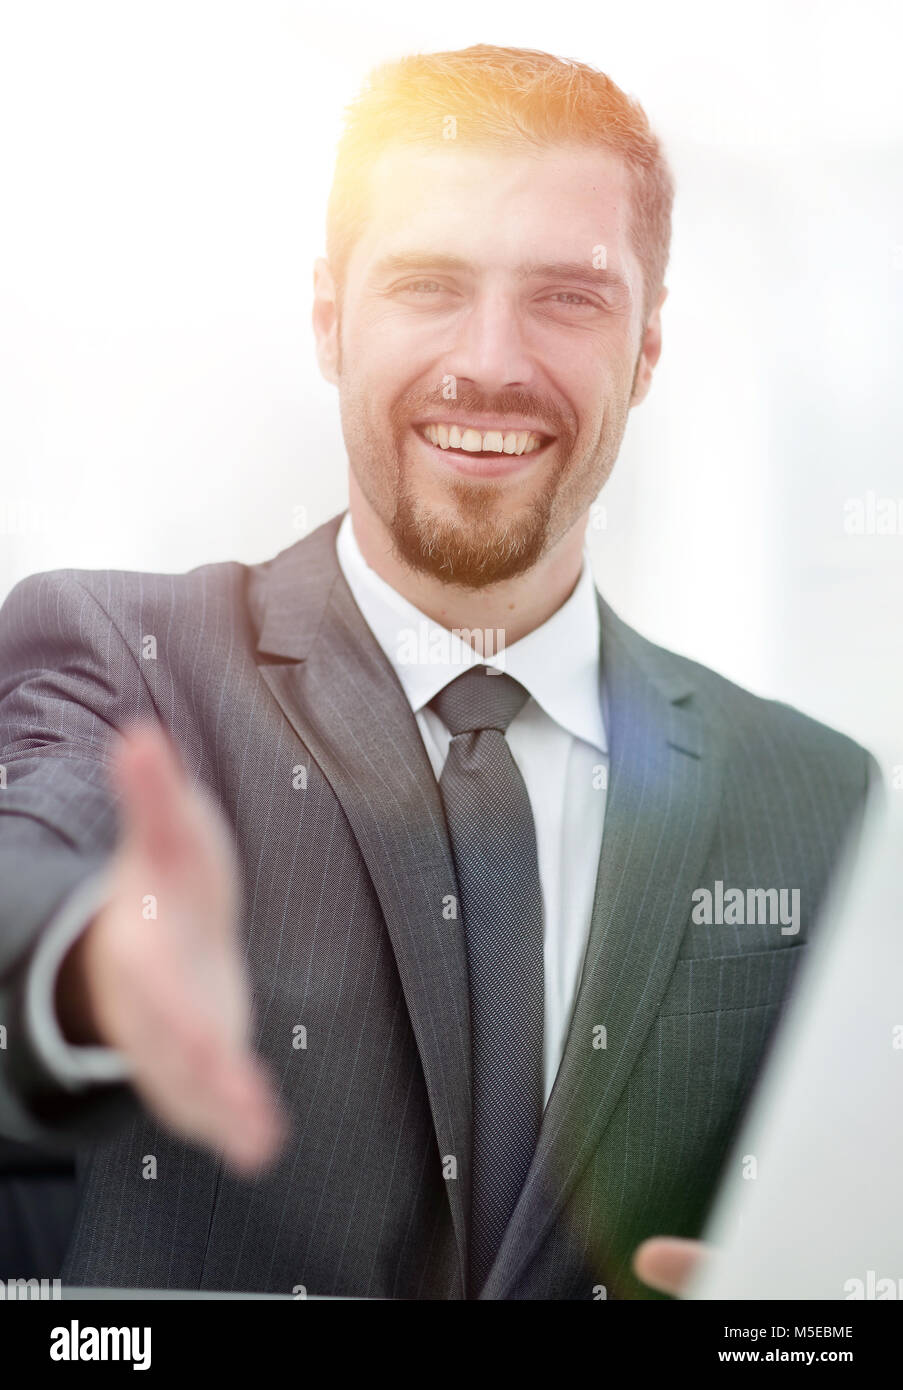 closeup .a successful businessman extends his hand for a handsha - Stock Image